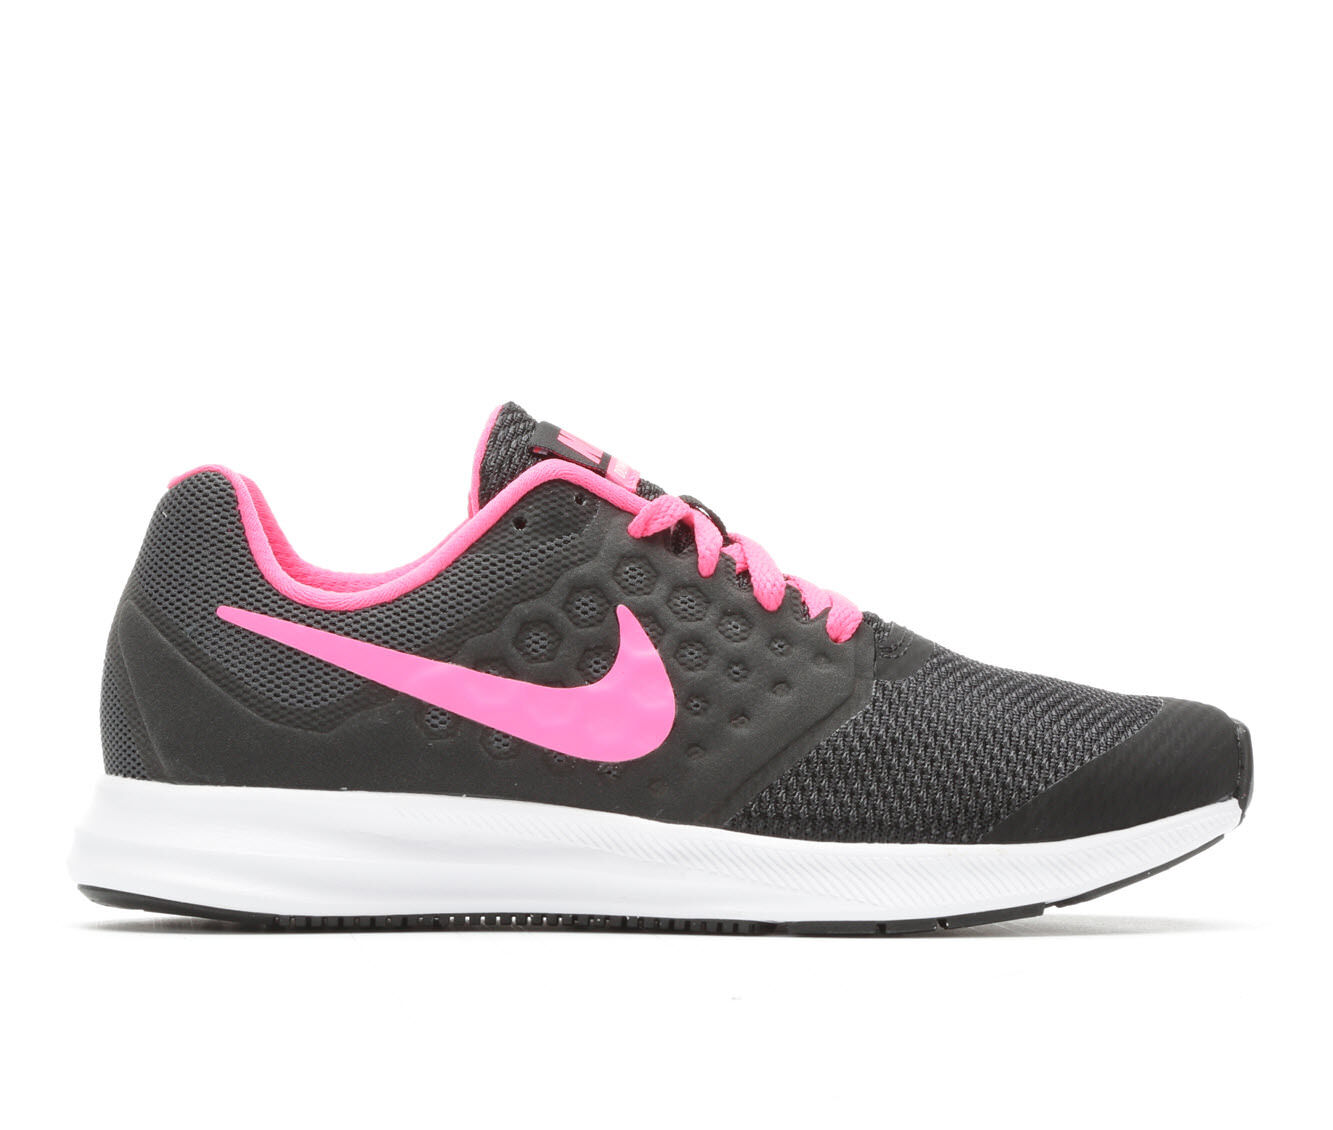 Images. Girls' Nike Downshifter 7 3.5-7 Running Shoes